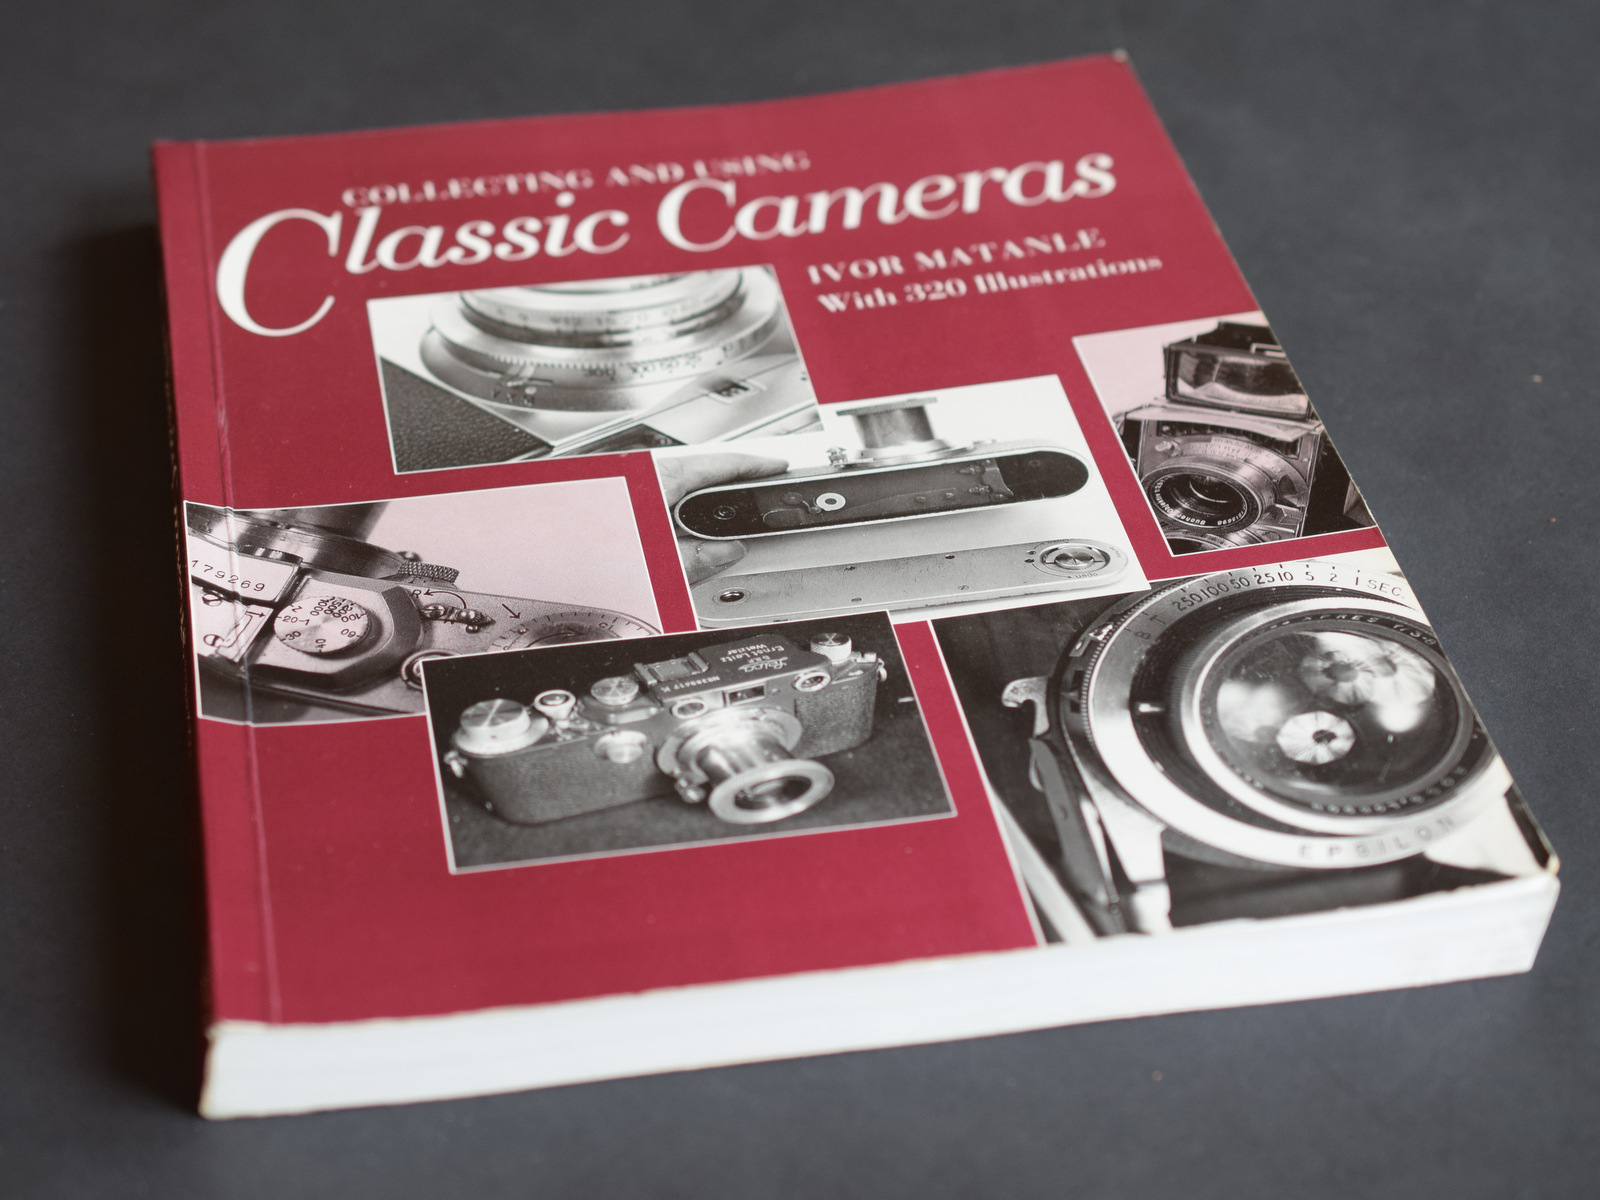 Lot 34 - Classic Cameras by Ivor Matanle